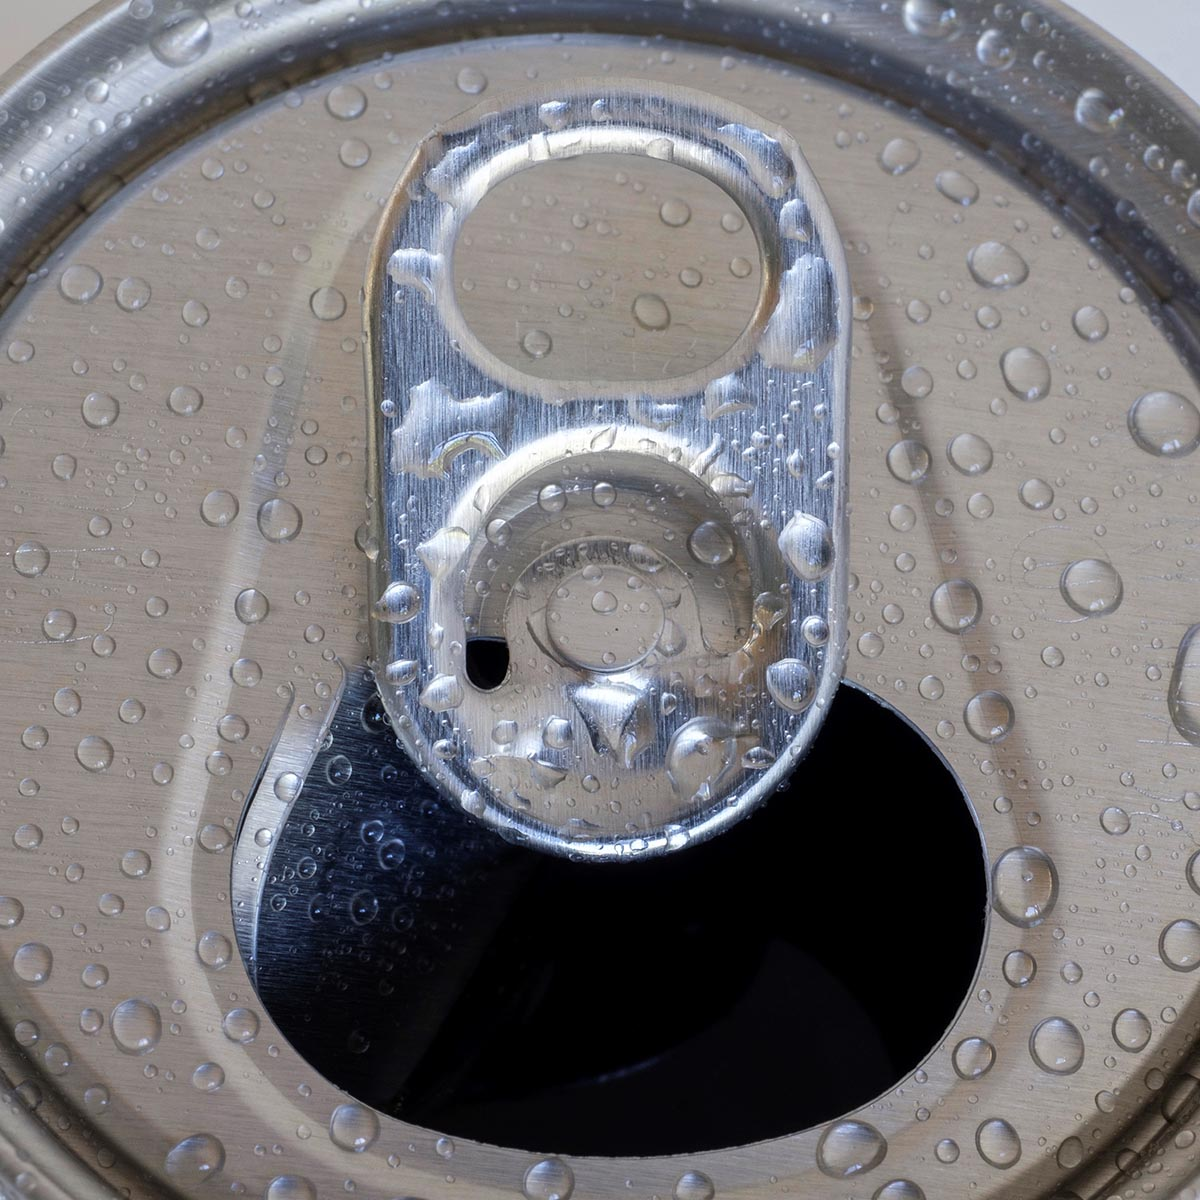 Free stock photo Close up of a flip top can with water drop